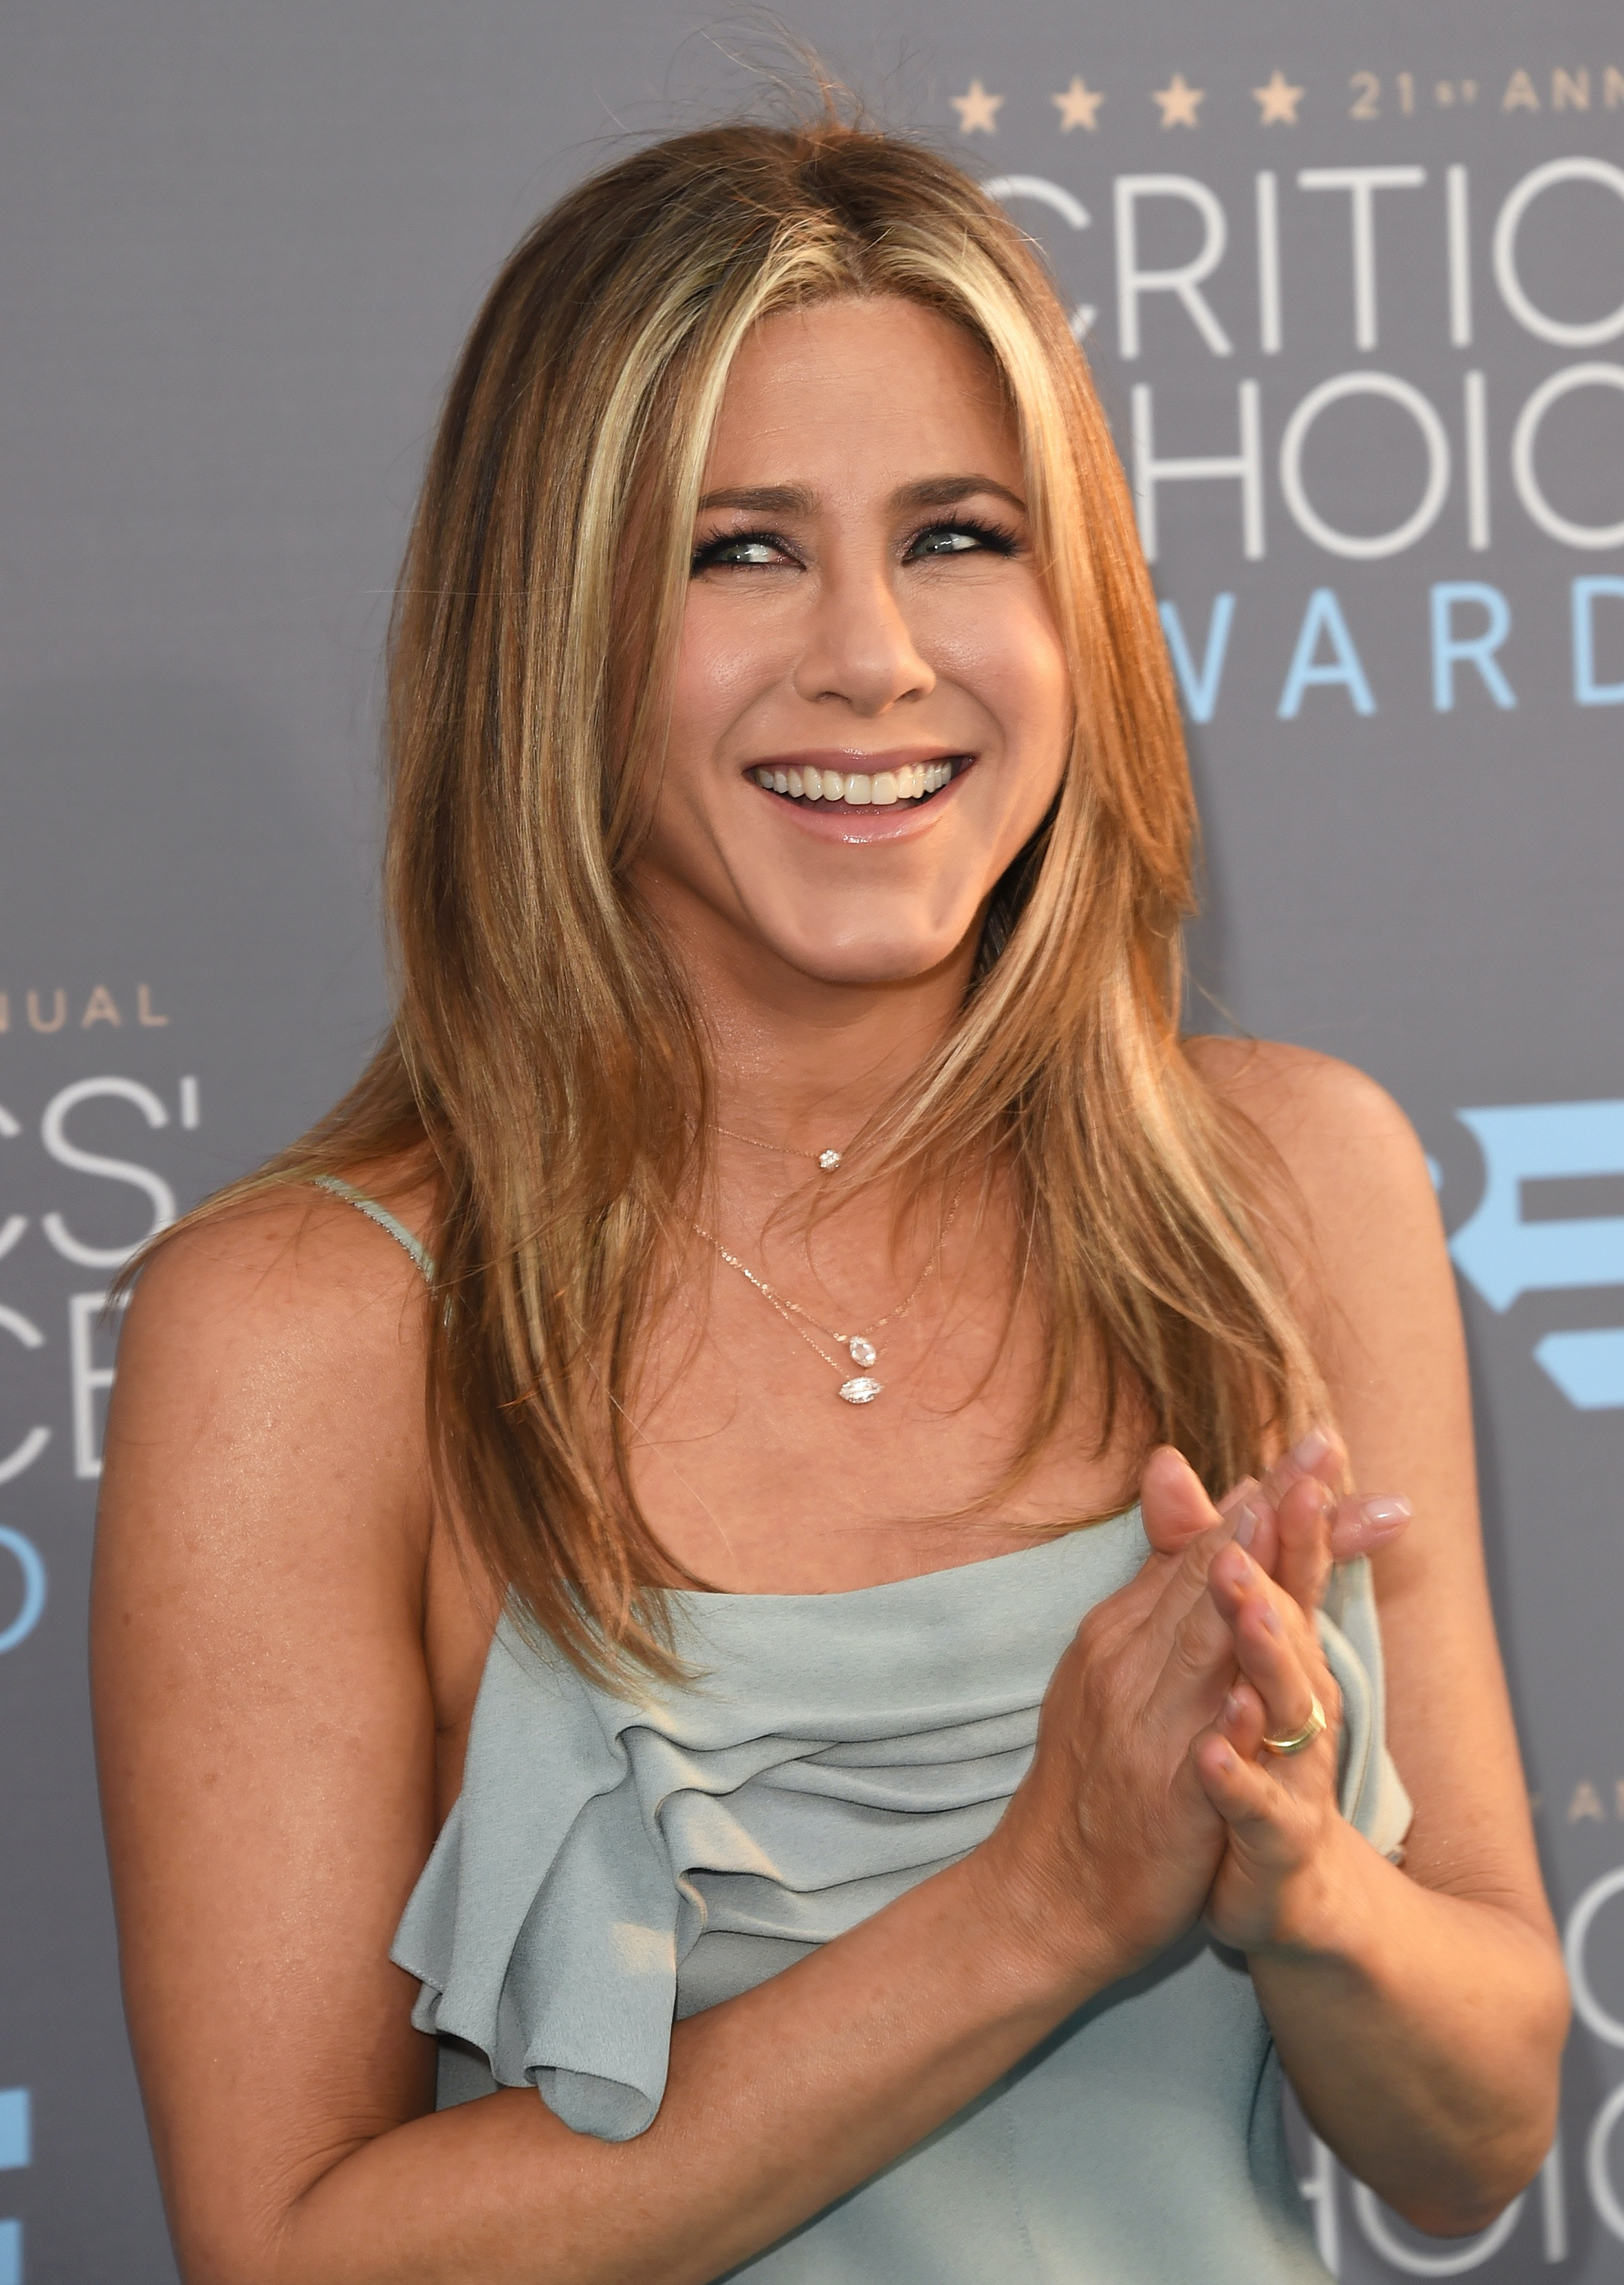 jennifer aniston has a tattoo honoring her dog. what was his name?